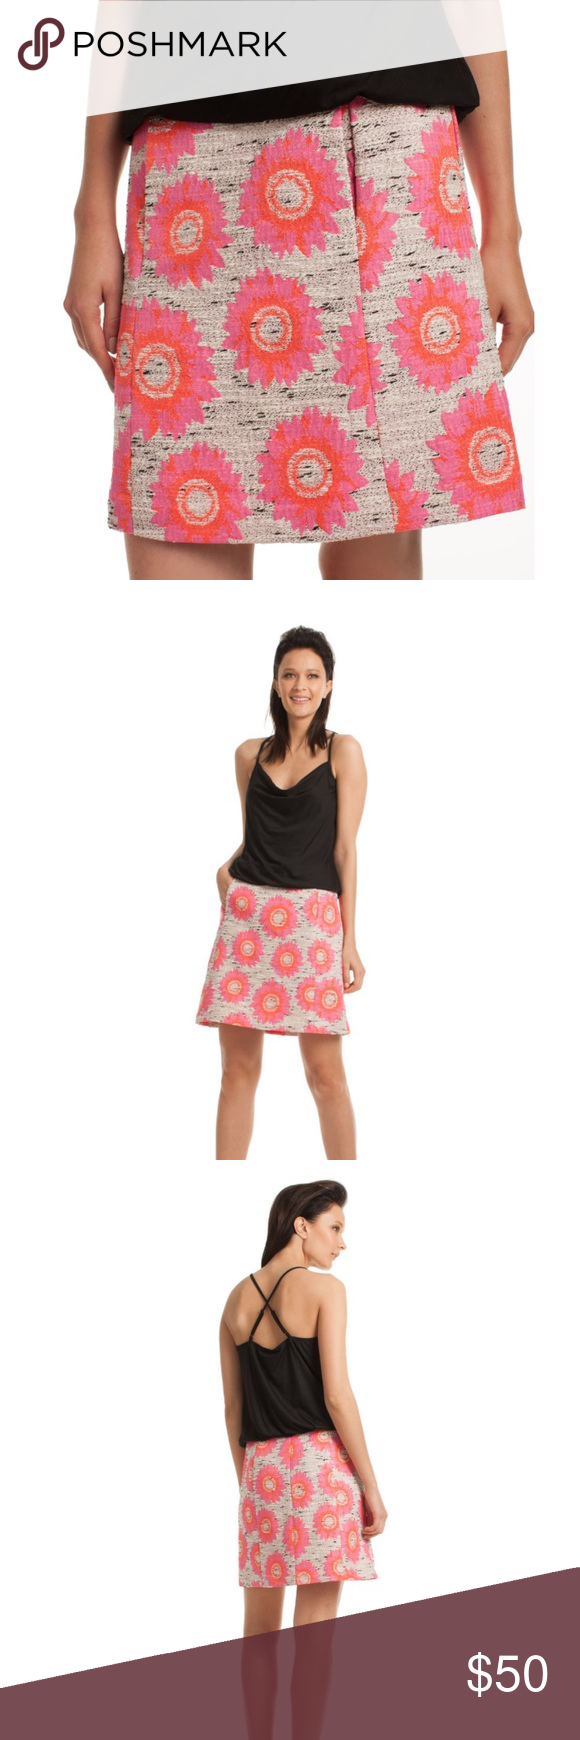 "Trina Turk Margo Textured Skirt In a chic, lightweight jacquard and a bright happy floral, the Margo Skirt makes getting dressed for pre-fall fun. With pockets and a-line silhouette, your daytime look is in stylish bloom. 19"" Length Hidden back zipper Unlined 60% Polyester, 29% Cotton, 7% Nylon, 4% Acrylic Dry Clean. Very good condition. Have matching jacket shown in last picture. Note- skirt and jacket are slightly different in color. One is slightly lighter, hardly noticeable when wearing…"